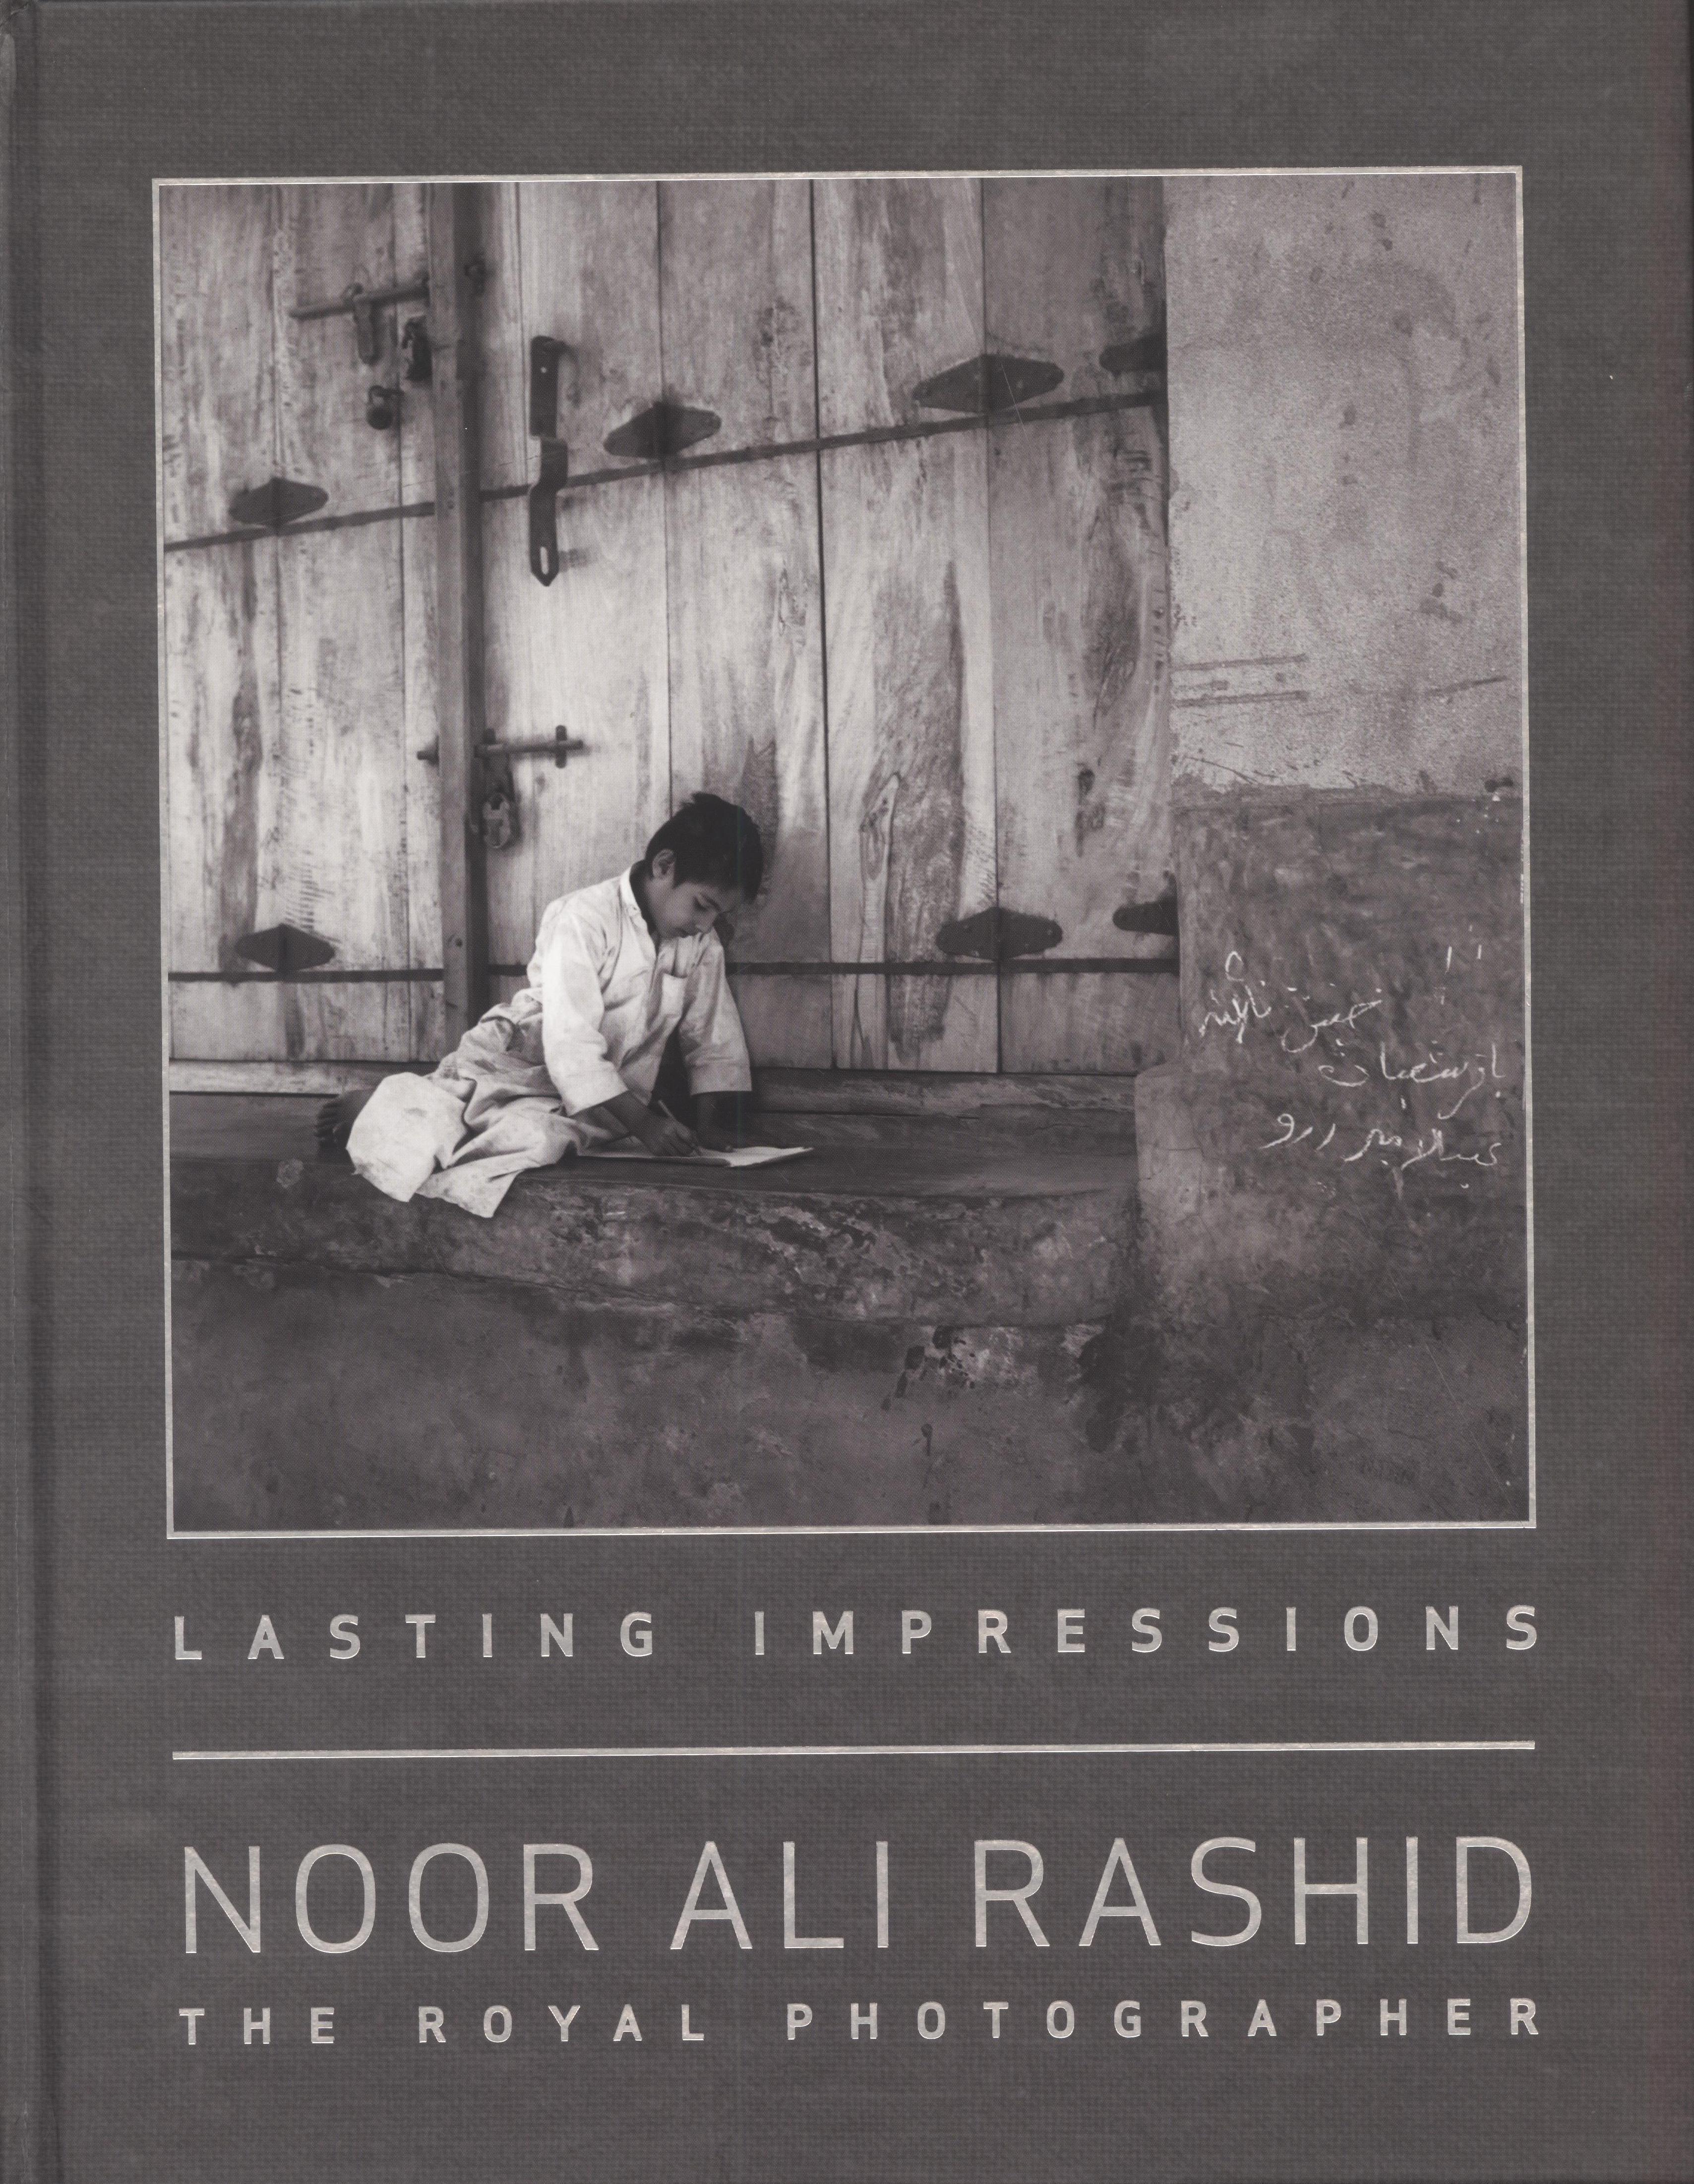 Lasting Impressions: Noor Ali Rashid, The Royal Photographer